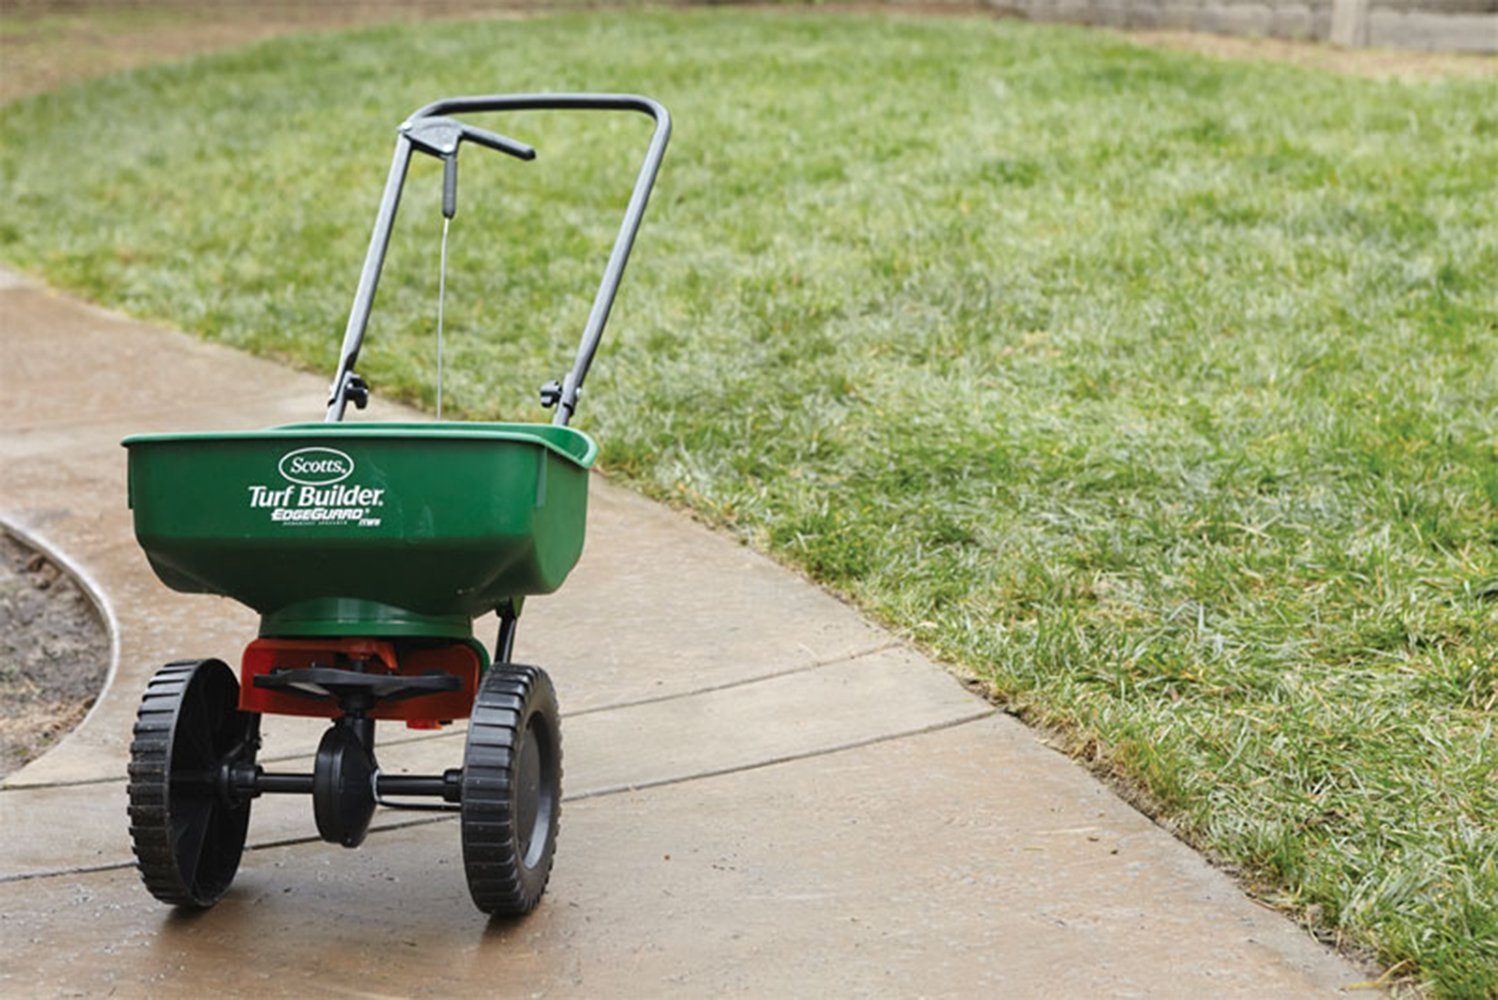 towbehind lawn spreader